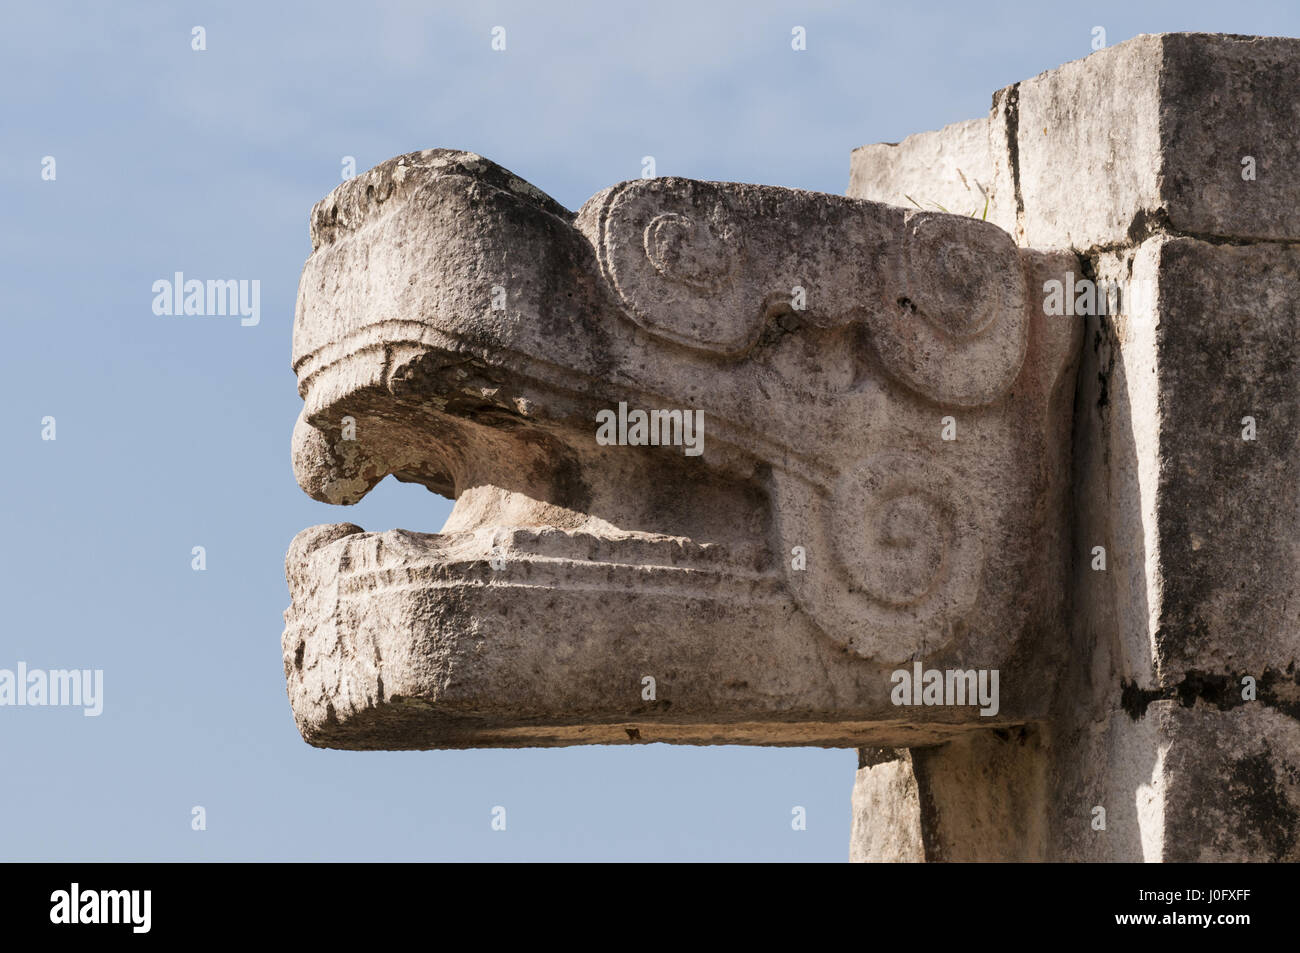 Mexico, Yucatan, Chichen Itza Mayan site, Platform of Eagles and Jaguars - Stock Image